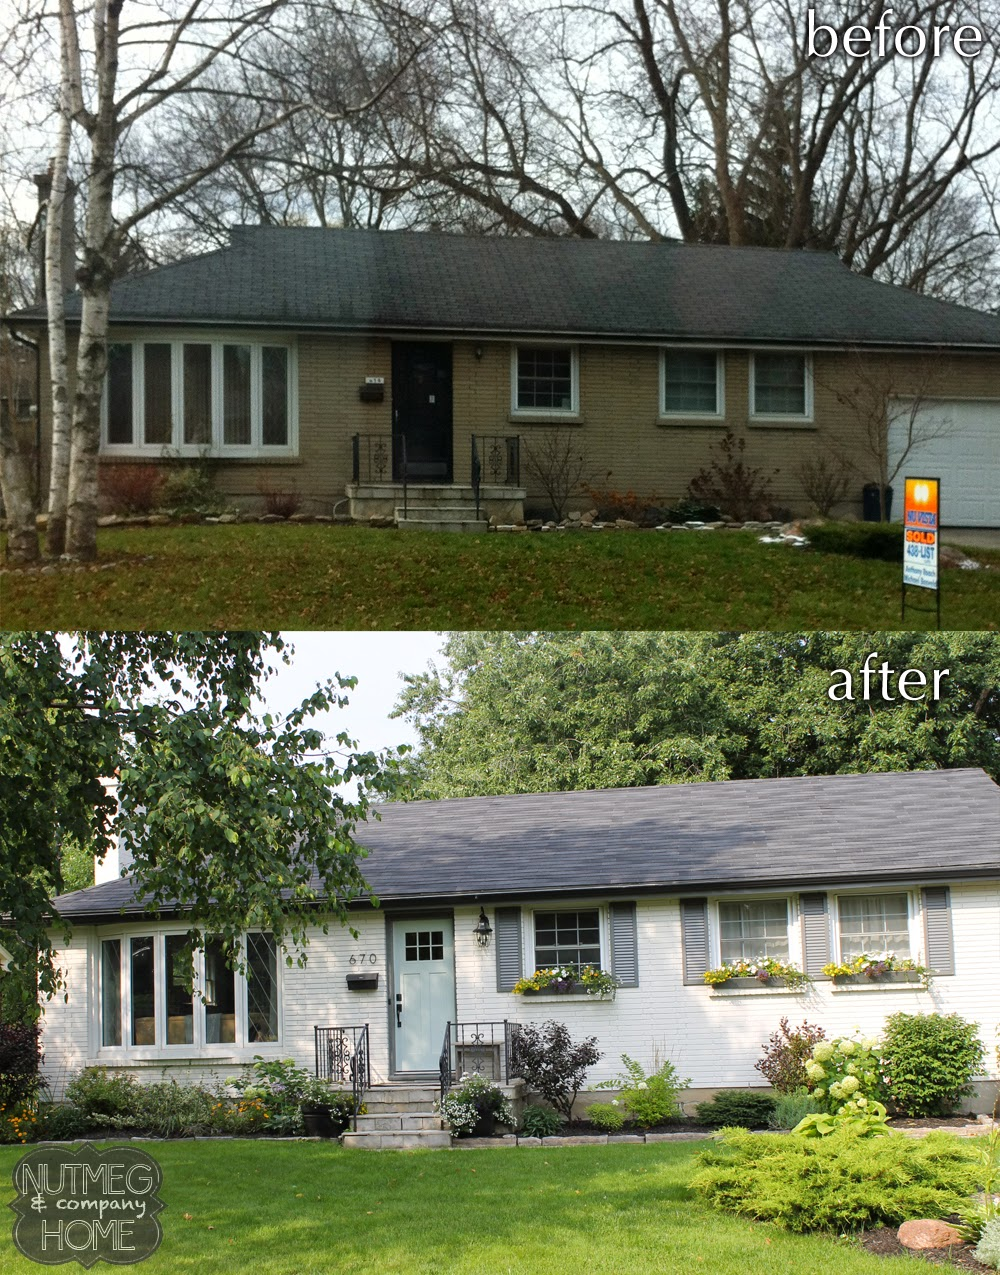 nutmeg company home before after curb appeal part 2